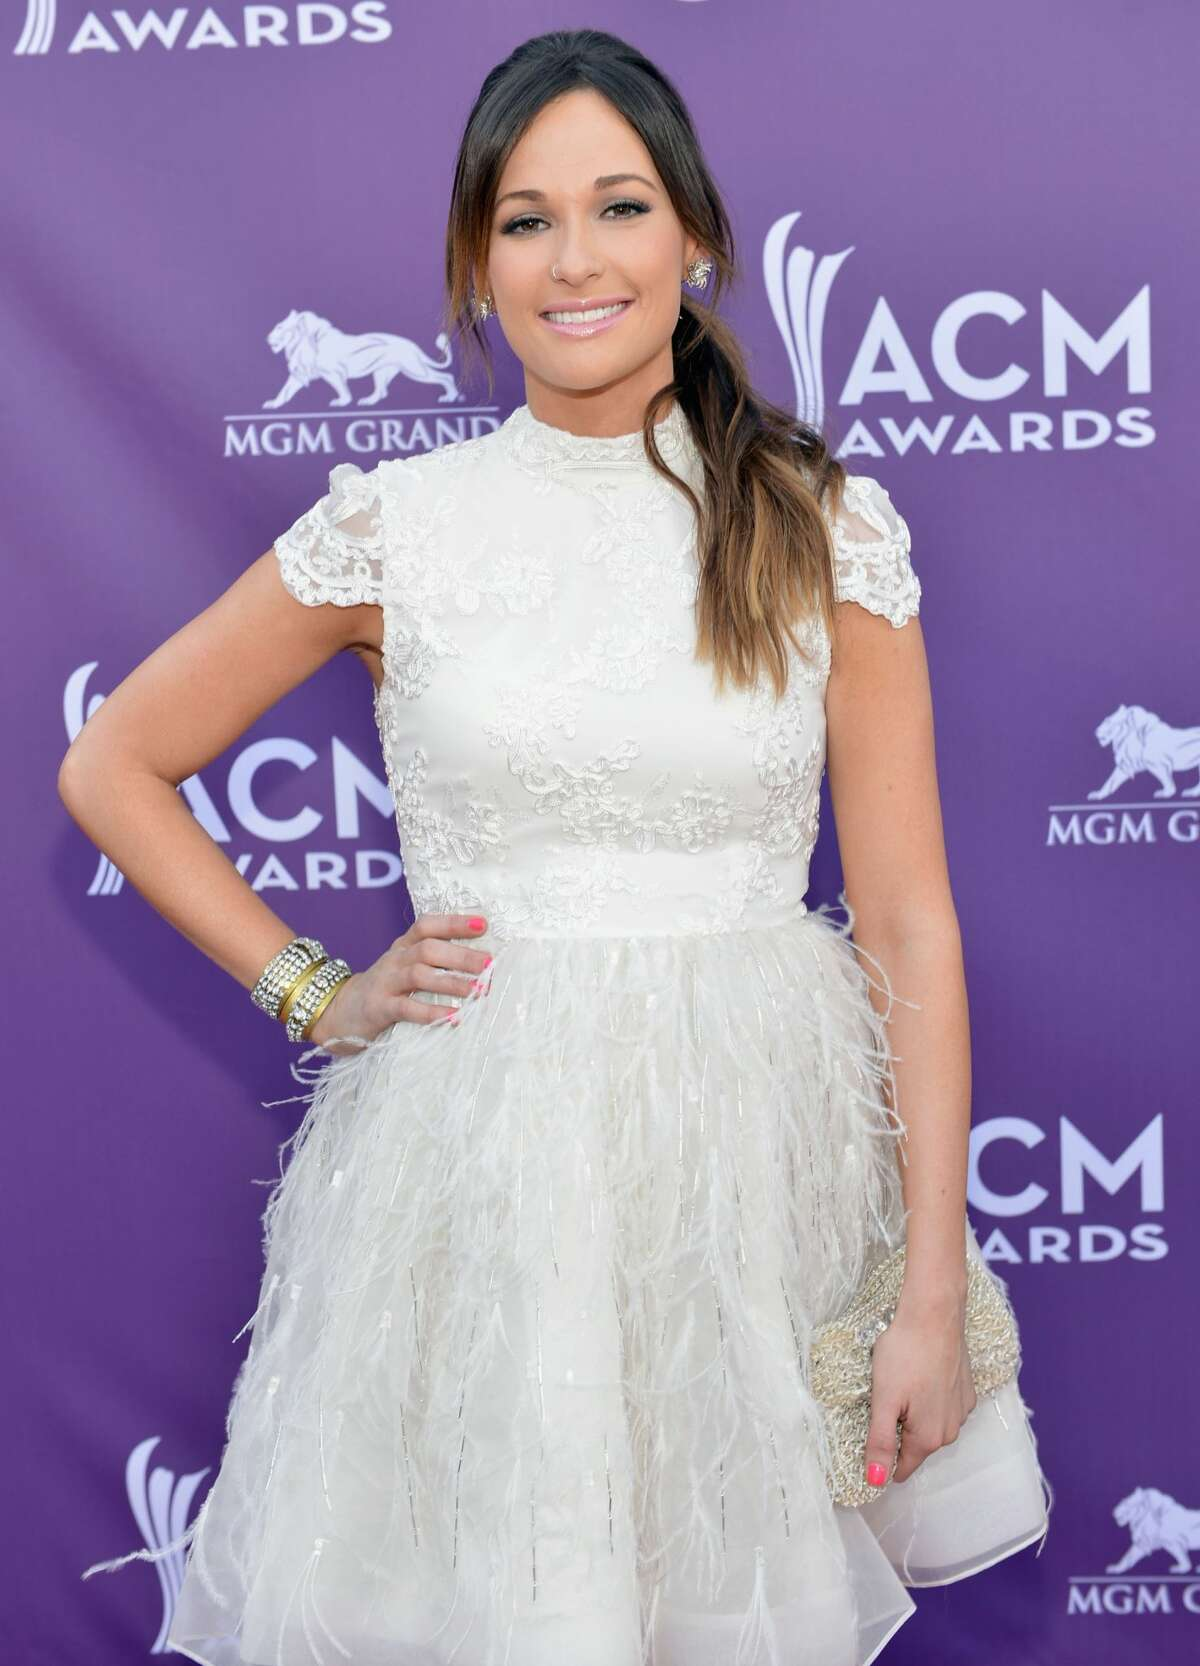 Kacey Musgraves Picture 3 - The 48th Annual Academy of